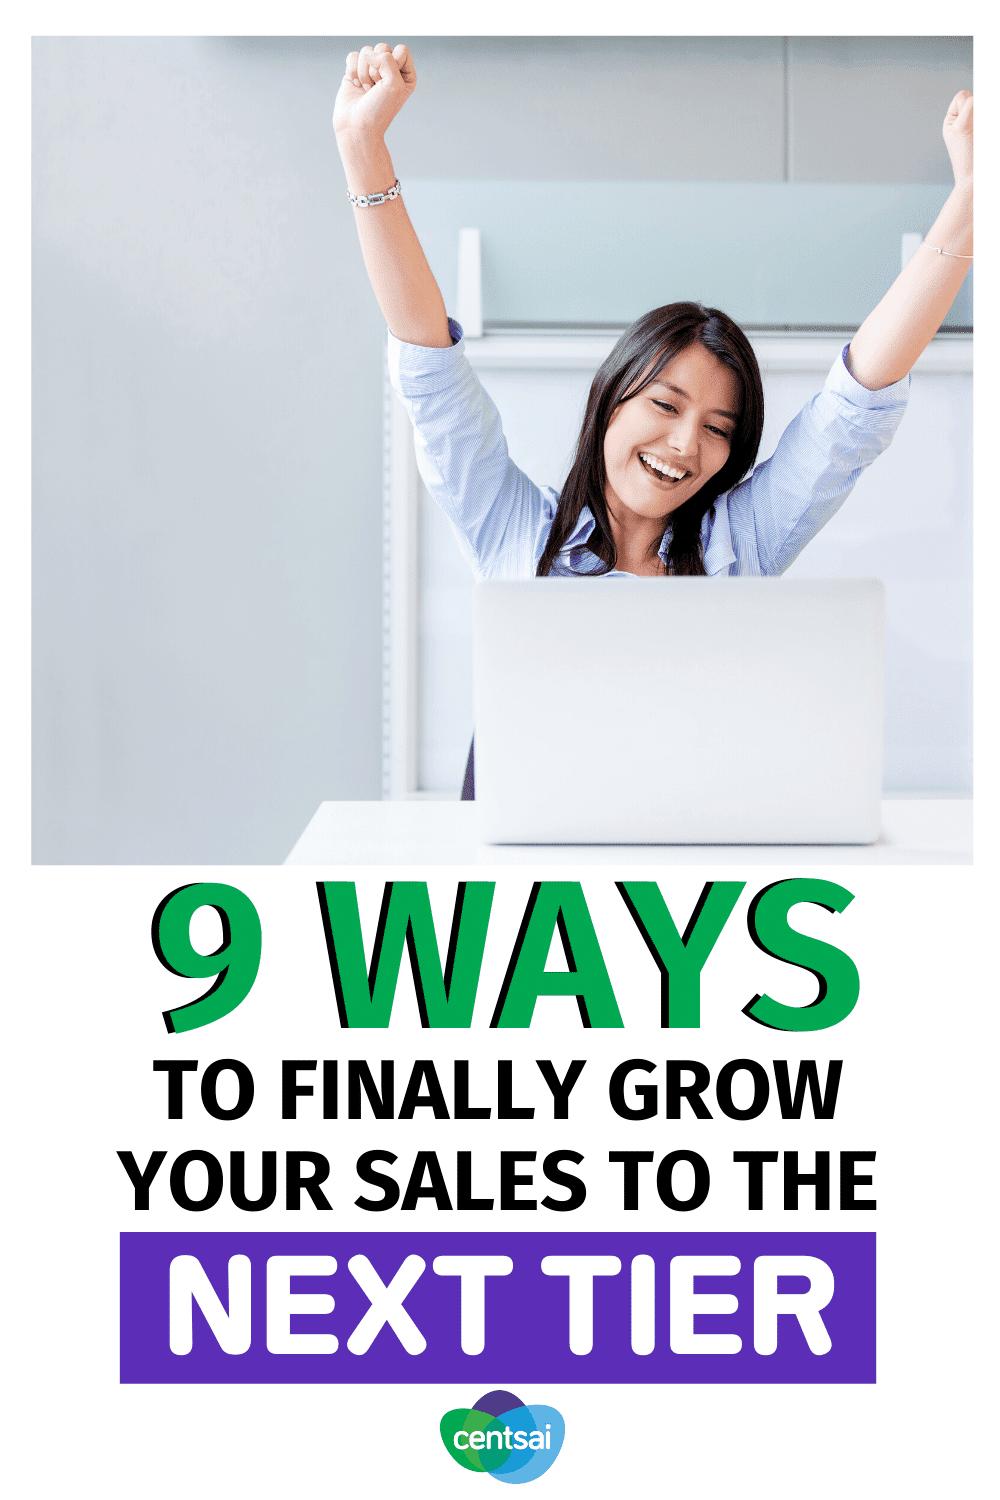 9 Ways to Finally Grow Your Sales to the Next Tier